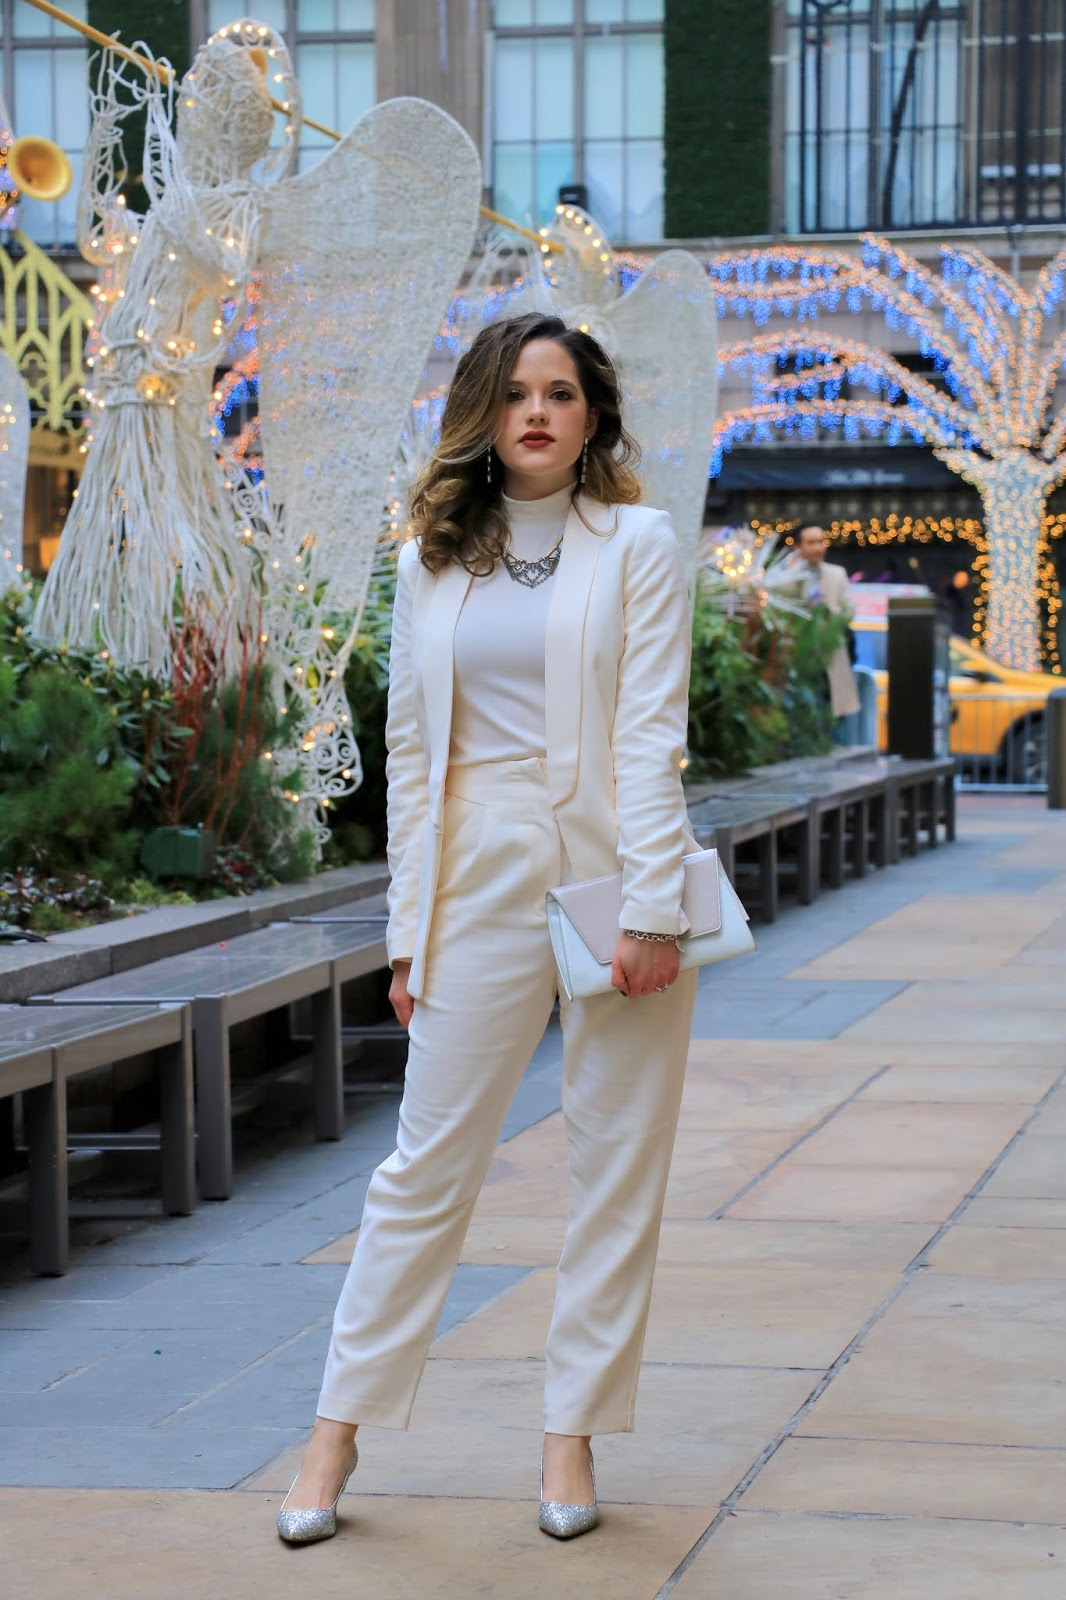 Nyc fashion blogger Kathleen Harper wearing a white monochrome outfit for the holidays.